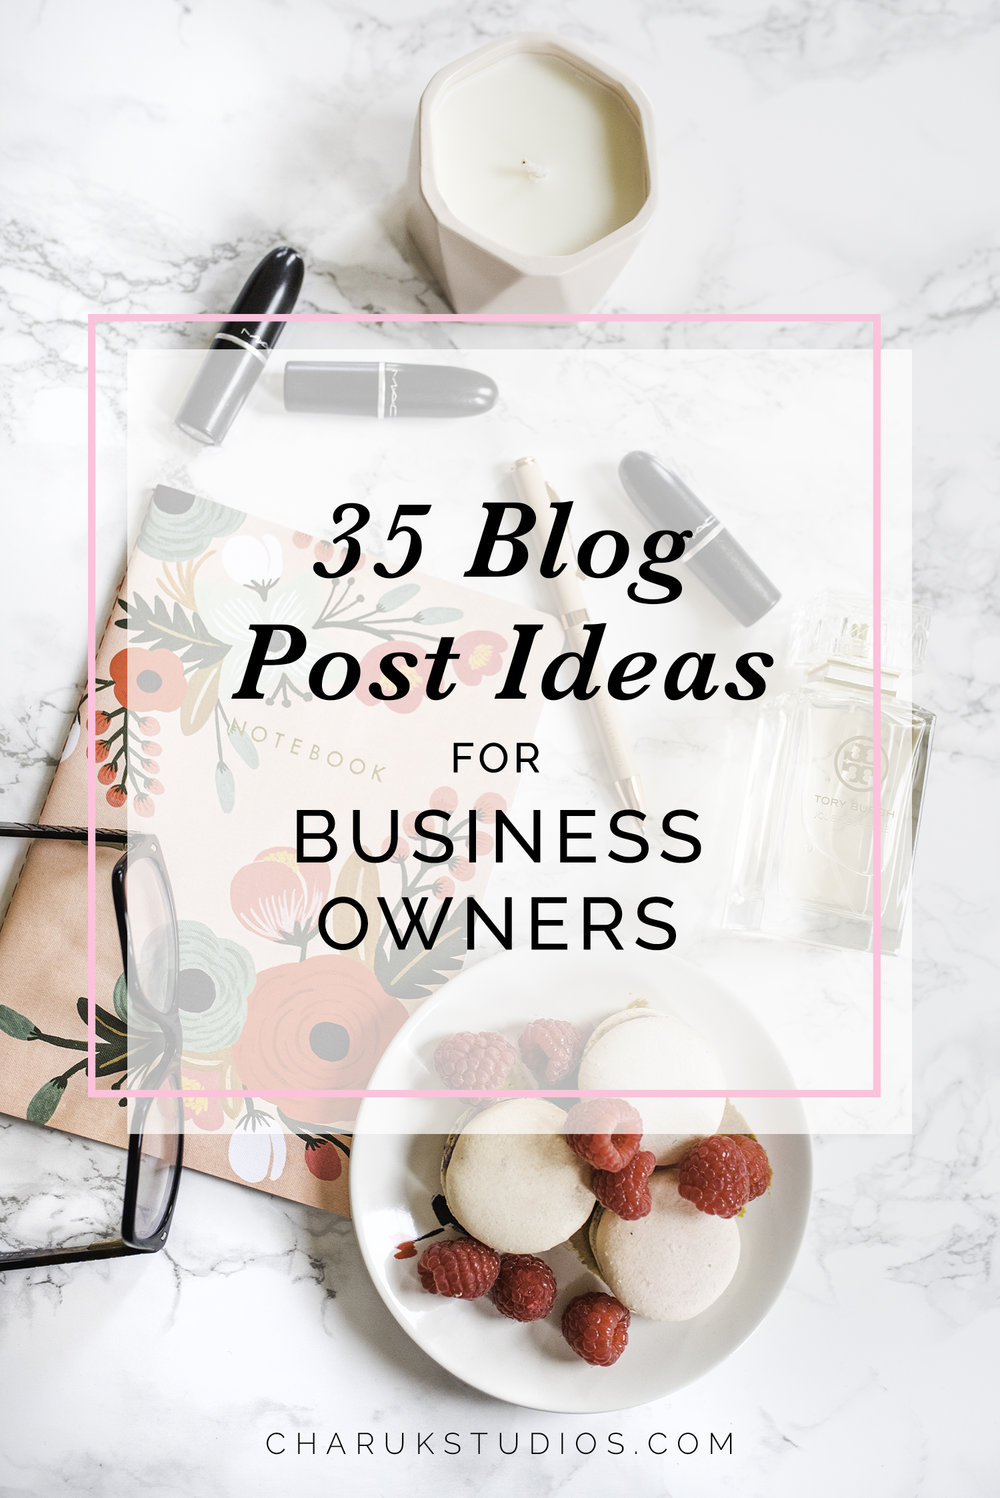 35 Blog Post Ideas for Business Owners